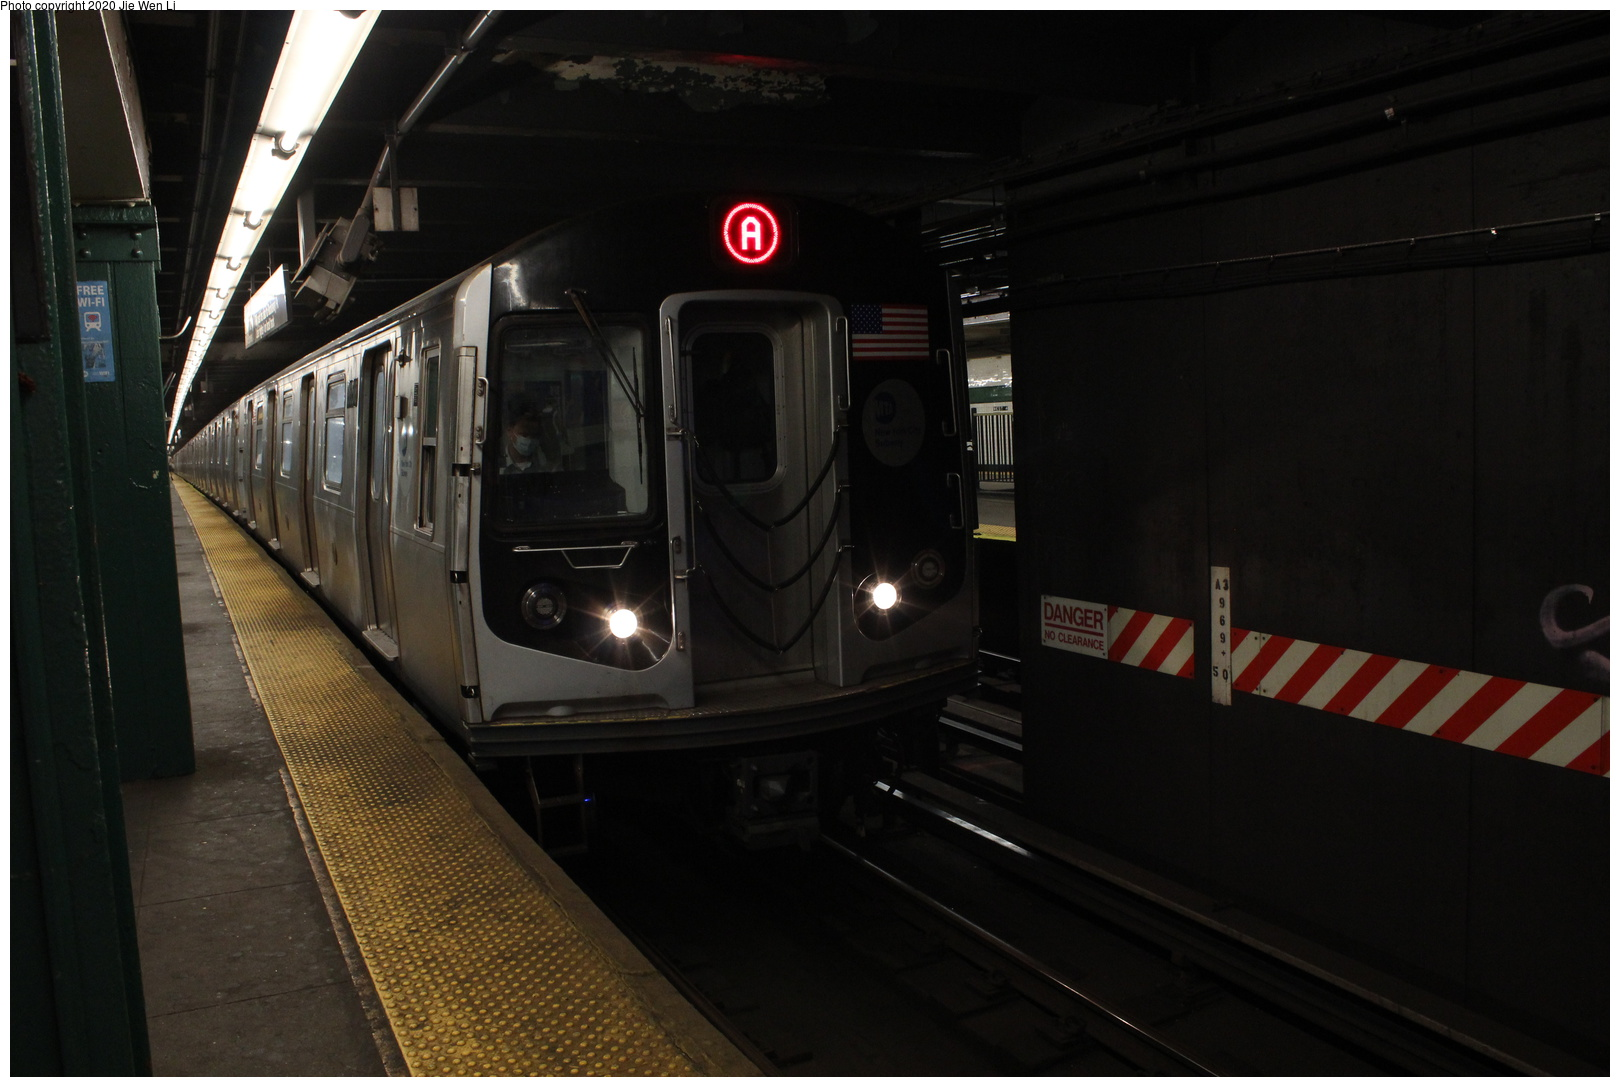 (245k, 1044x684)<br><b>Country:</b> United States<br><b>City:</b> New York<br><b>System:</b> New York City Transit<br><b>Line:</b> IRT Flushing Line<br><b>Location:</b> Willets Point/Mets (fmr. Shea Stadium) <br><b>Route:</b> 7 Special<br><b>Car:</b> R-29 (St. Louis, 1962)  <br><b>Photo by:</b> Joel Shanus<br><b>Date:</b> 1964<br><b>Viewed (this week/total):</b> 0 / 2329